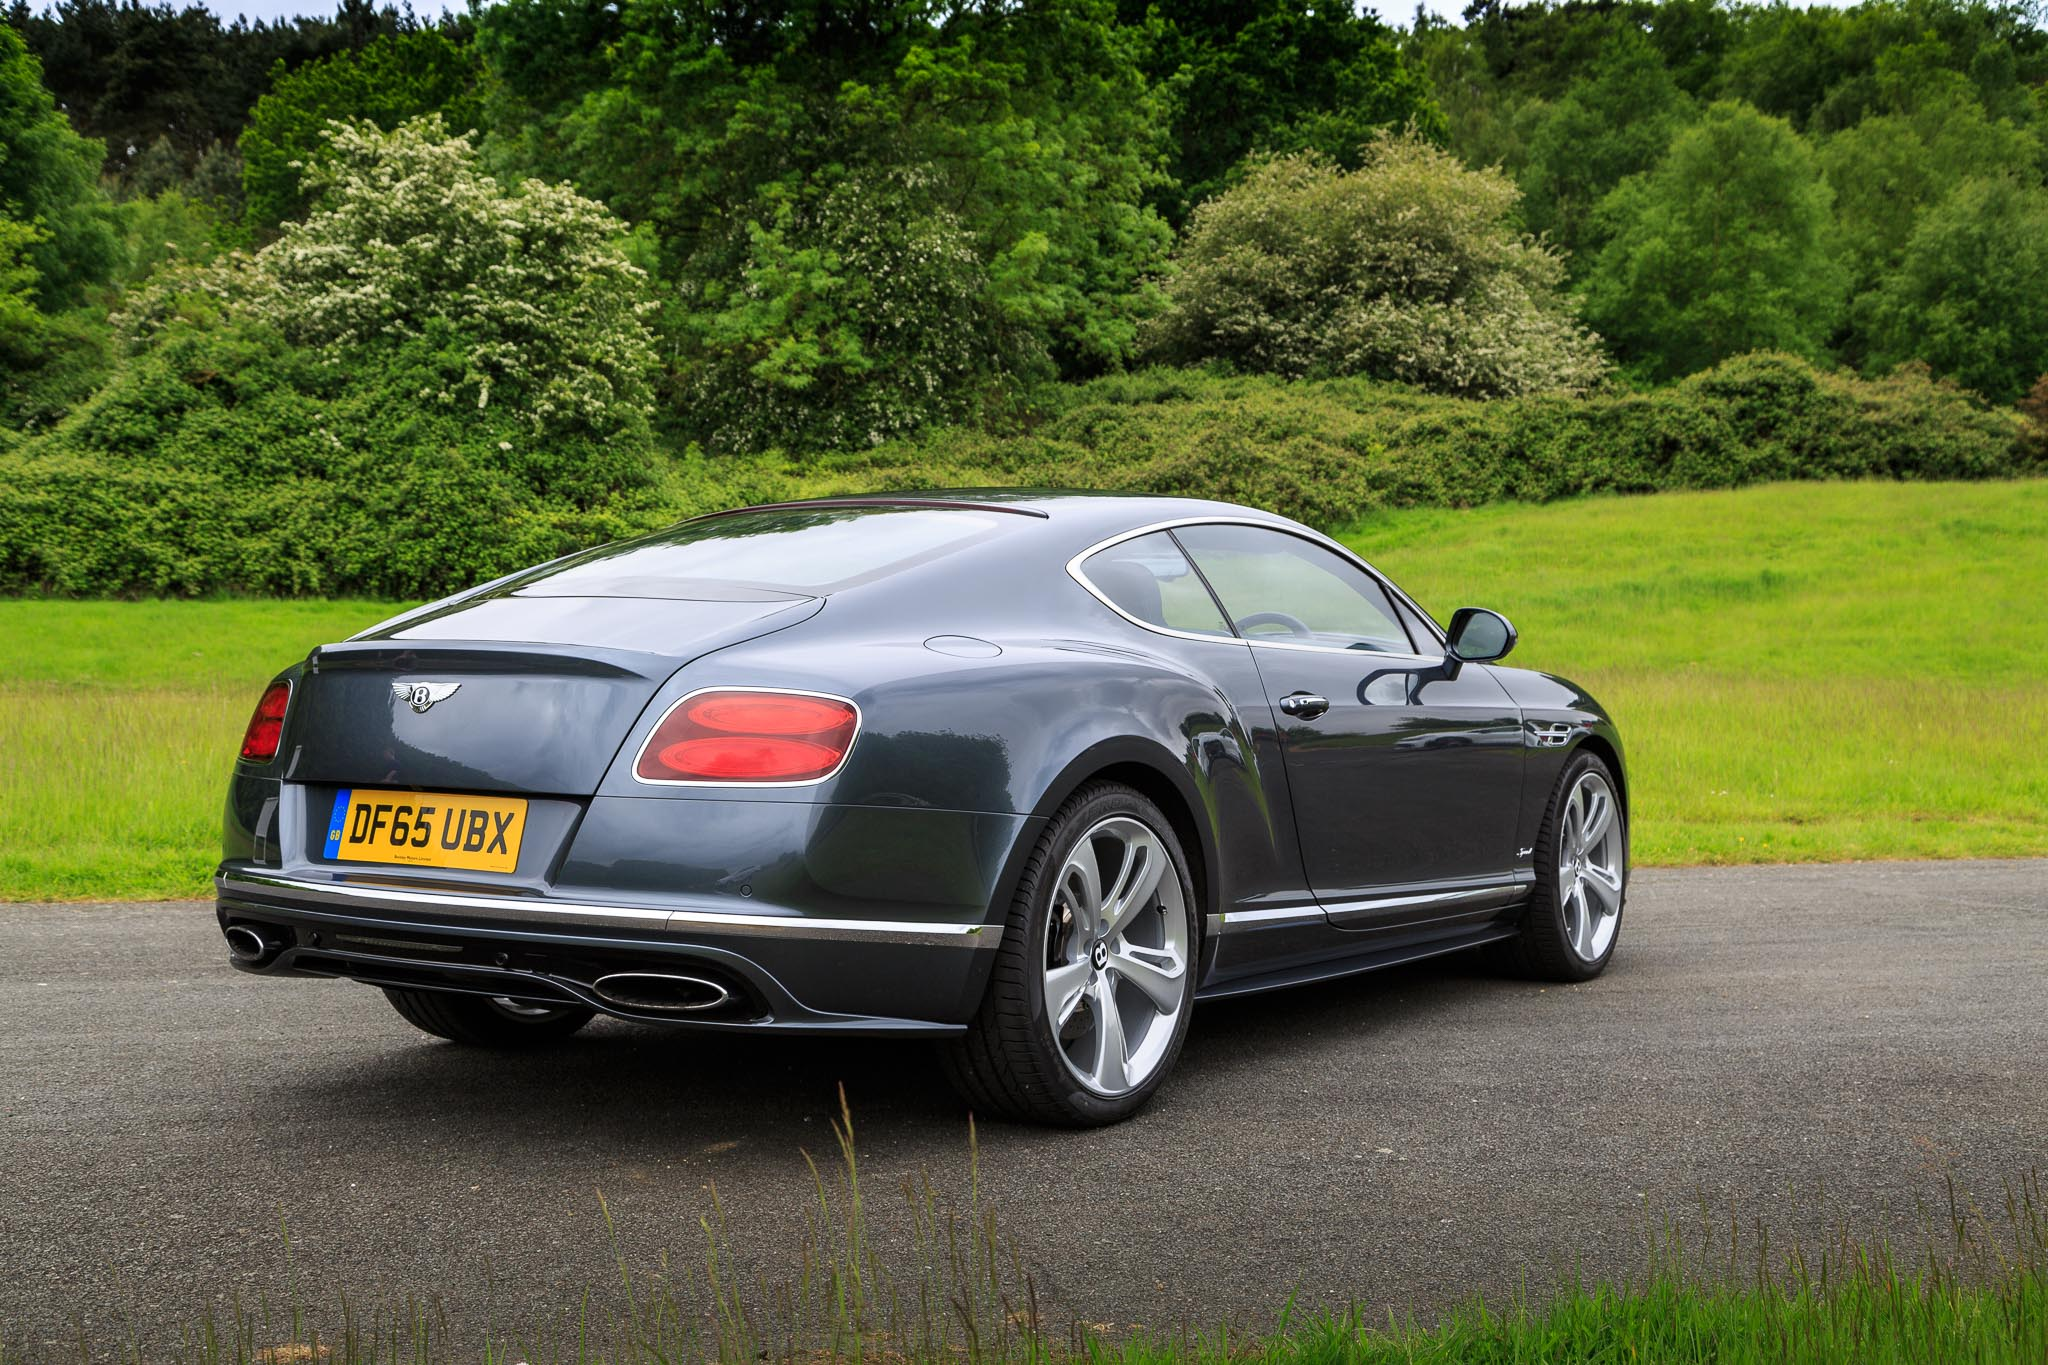 Bentley Continental GT 2016 Review - 626 BHP and 820 Nm of ...